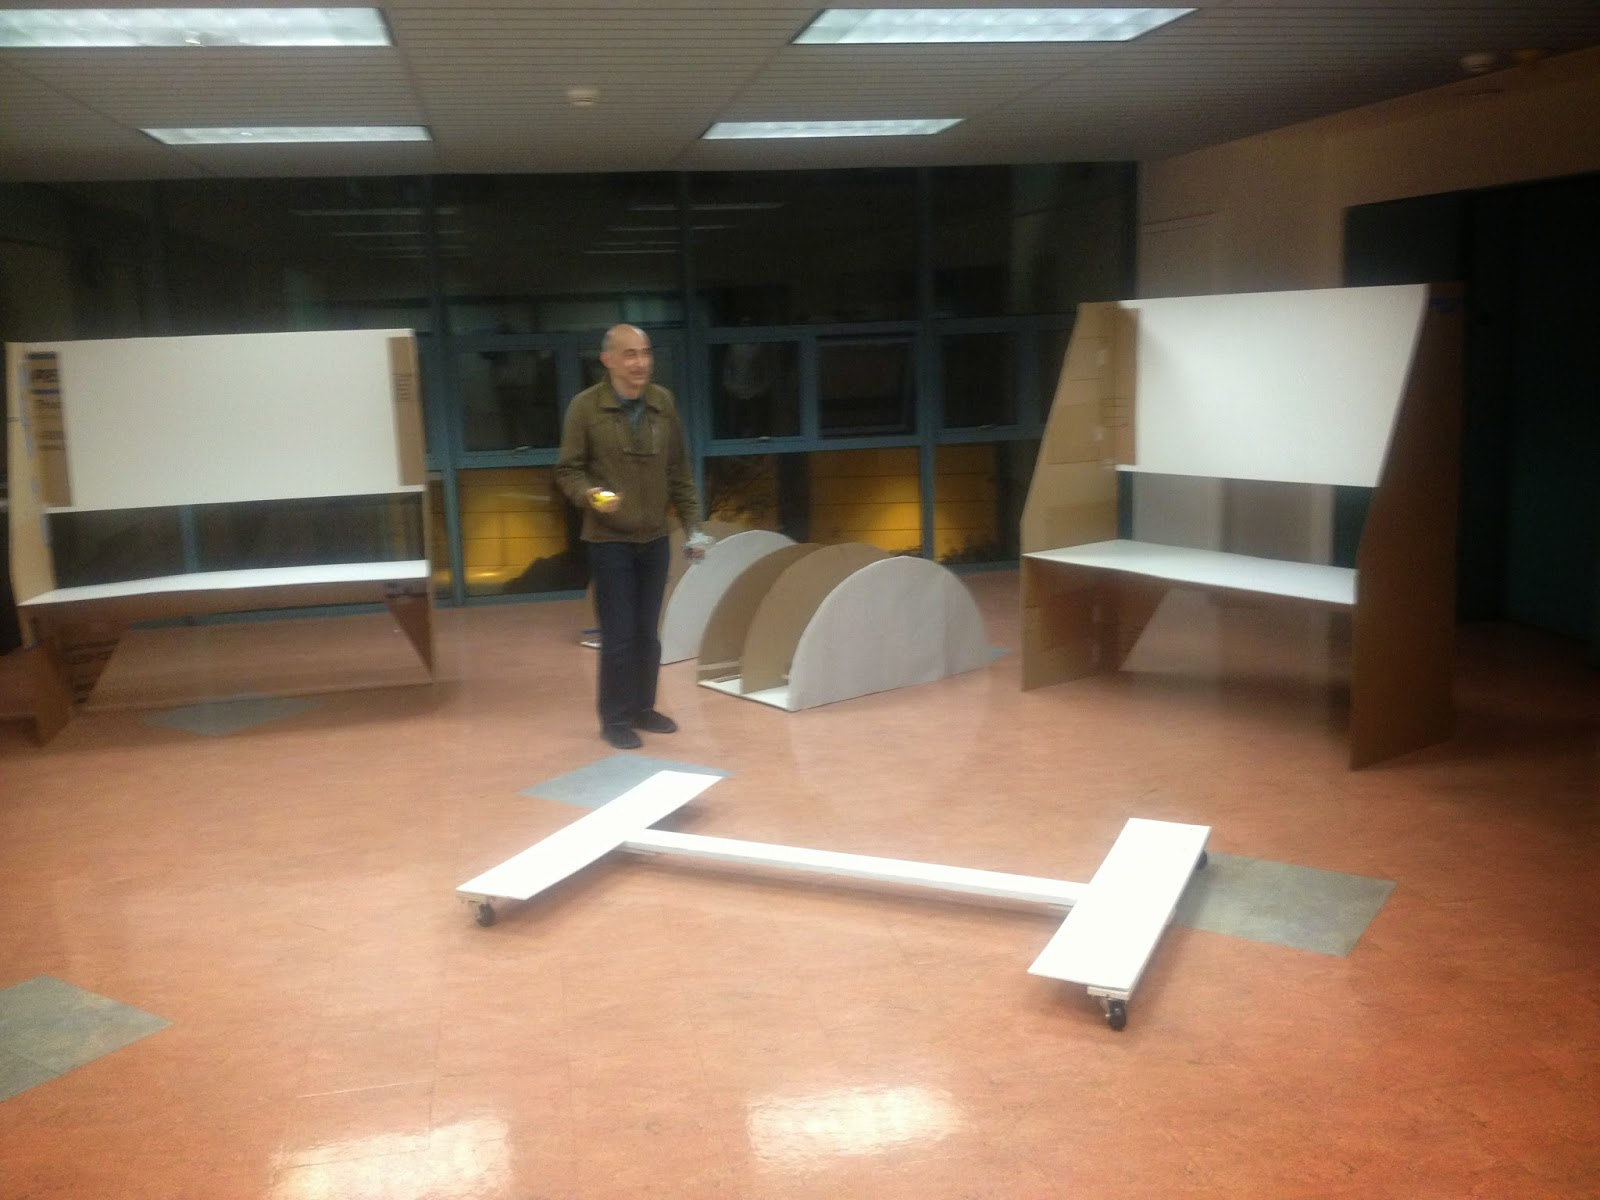 The dolly sits in front of the image with other cardboard model pieces standing in the background. The instructor stands at the center inspecting the pieces.